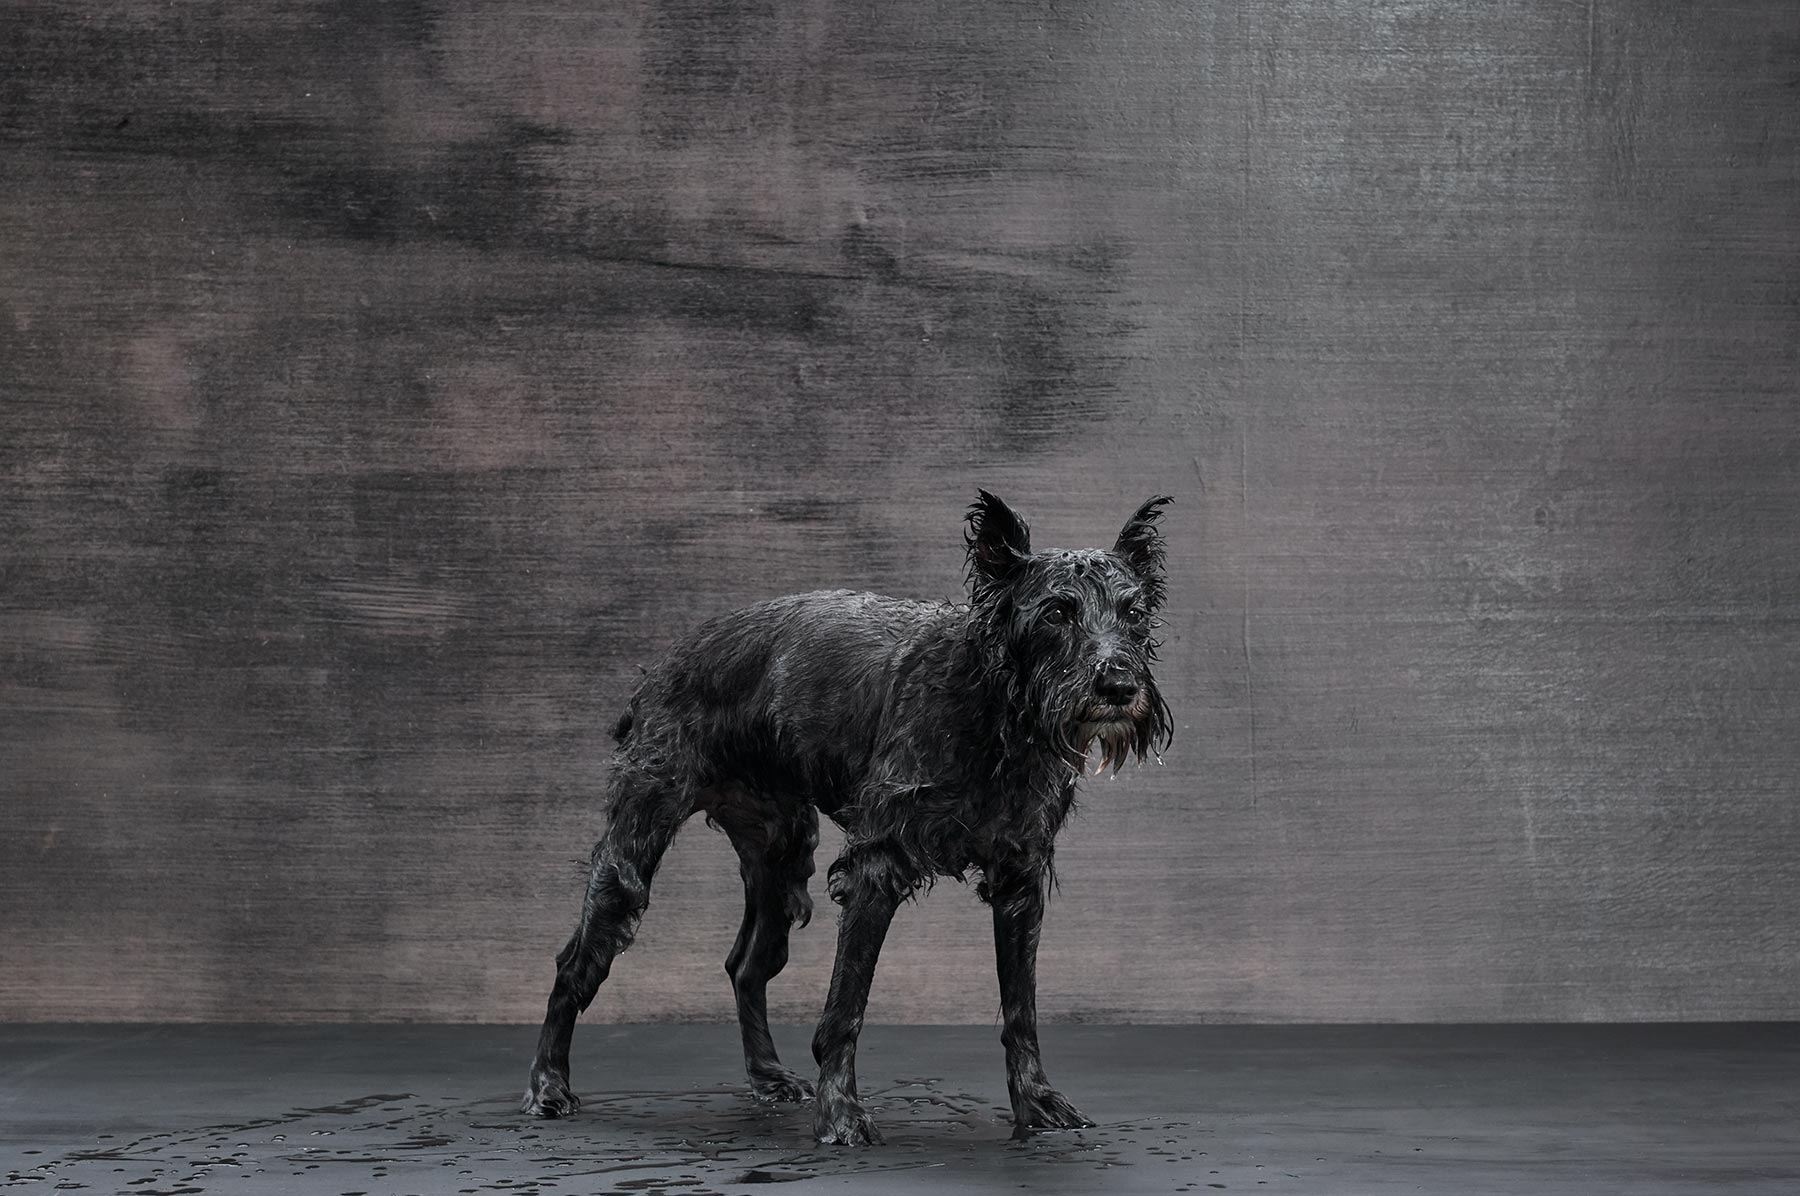 A-studio-portrait-of-a-wet-black-dog-against-a-black-background